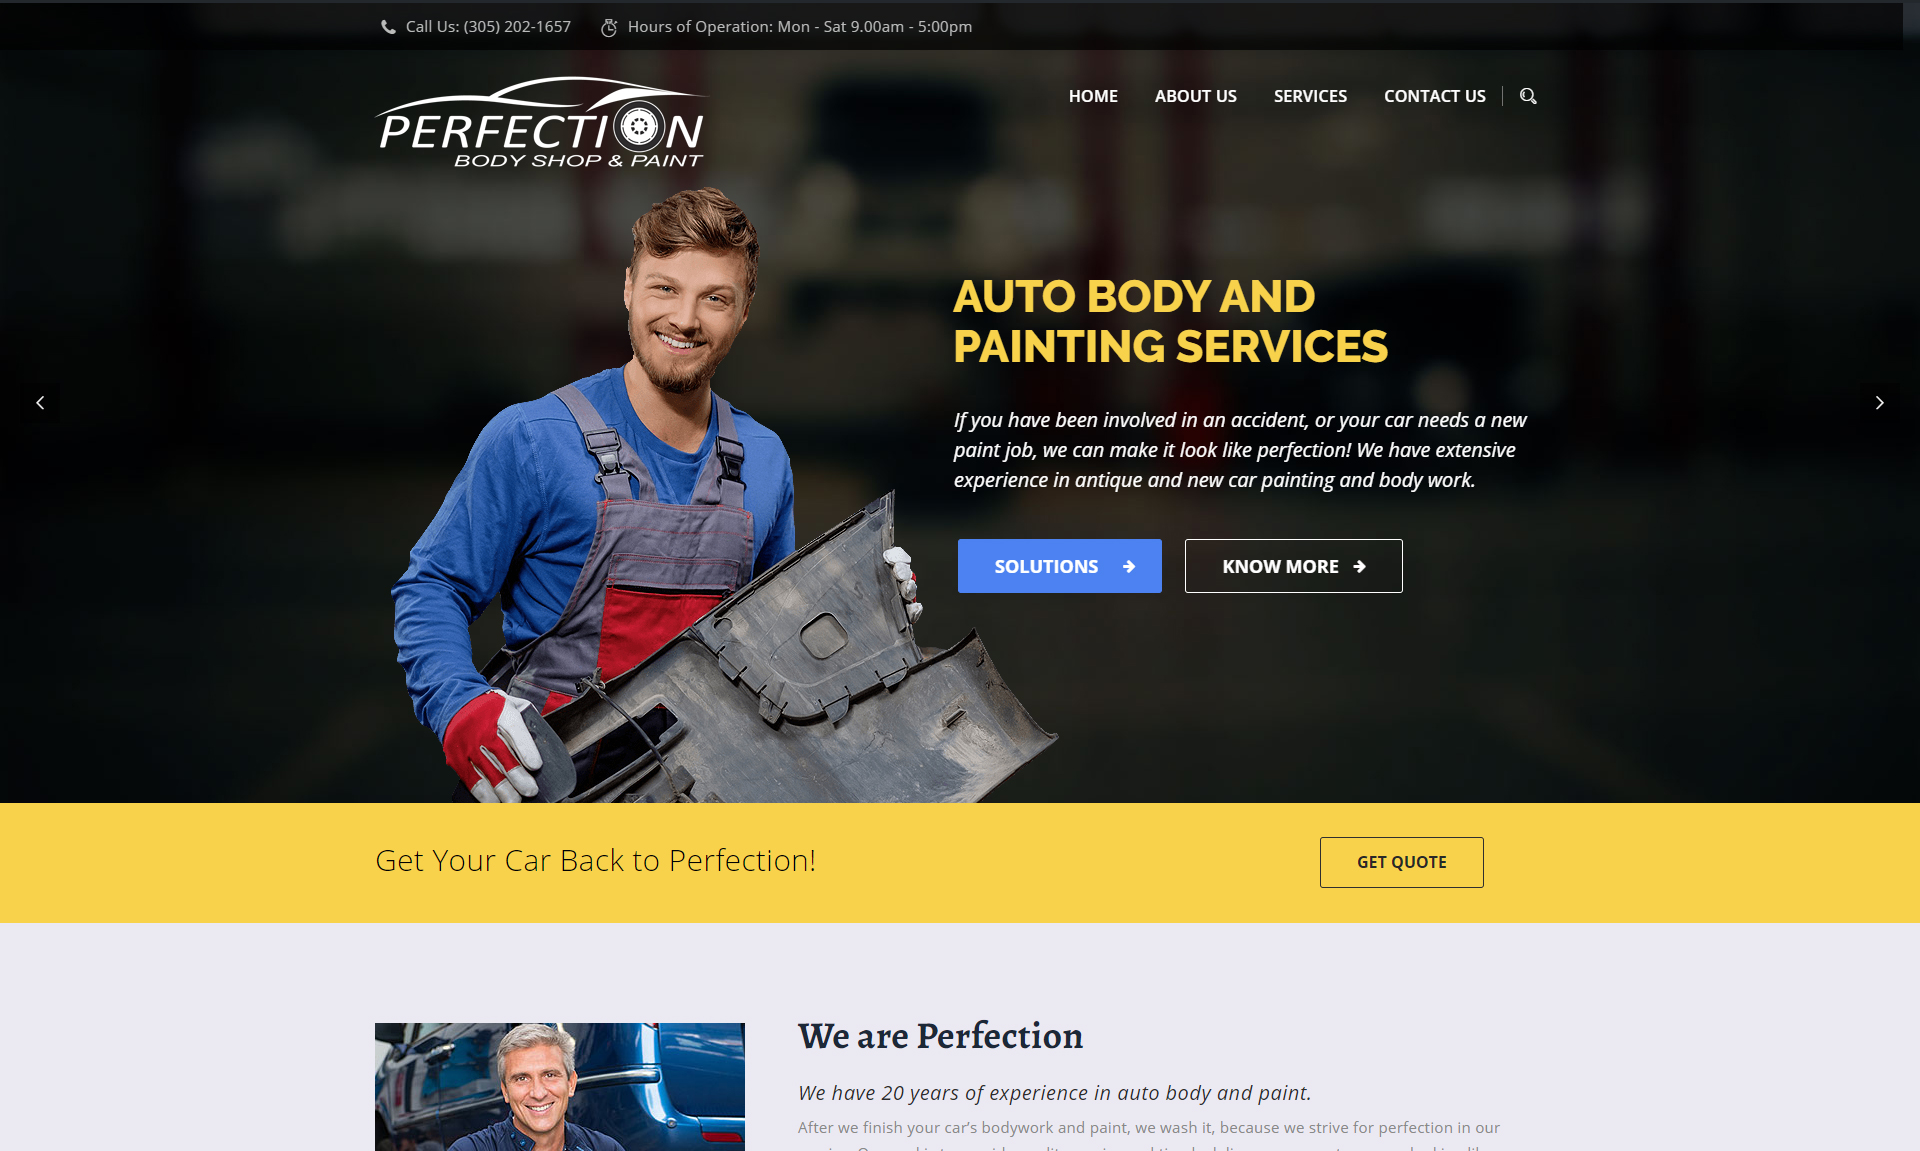 perfection body shop and paint